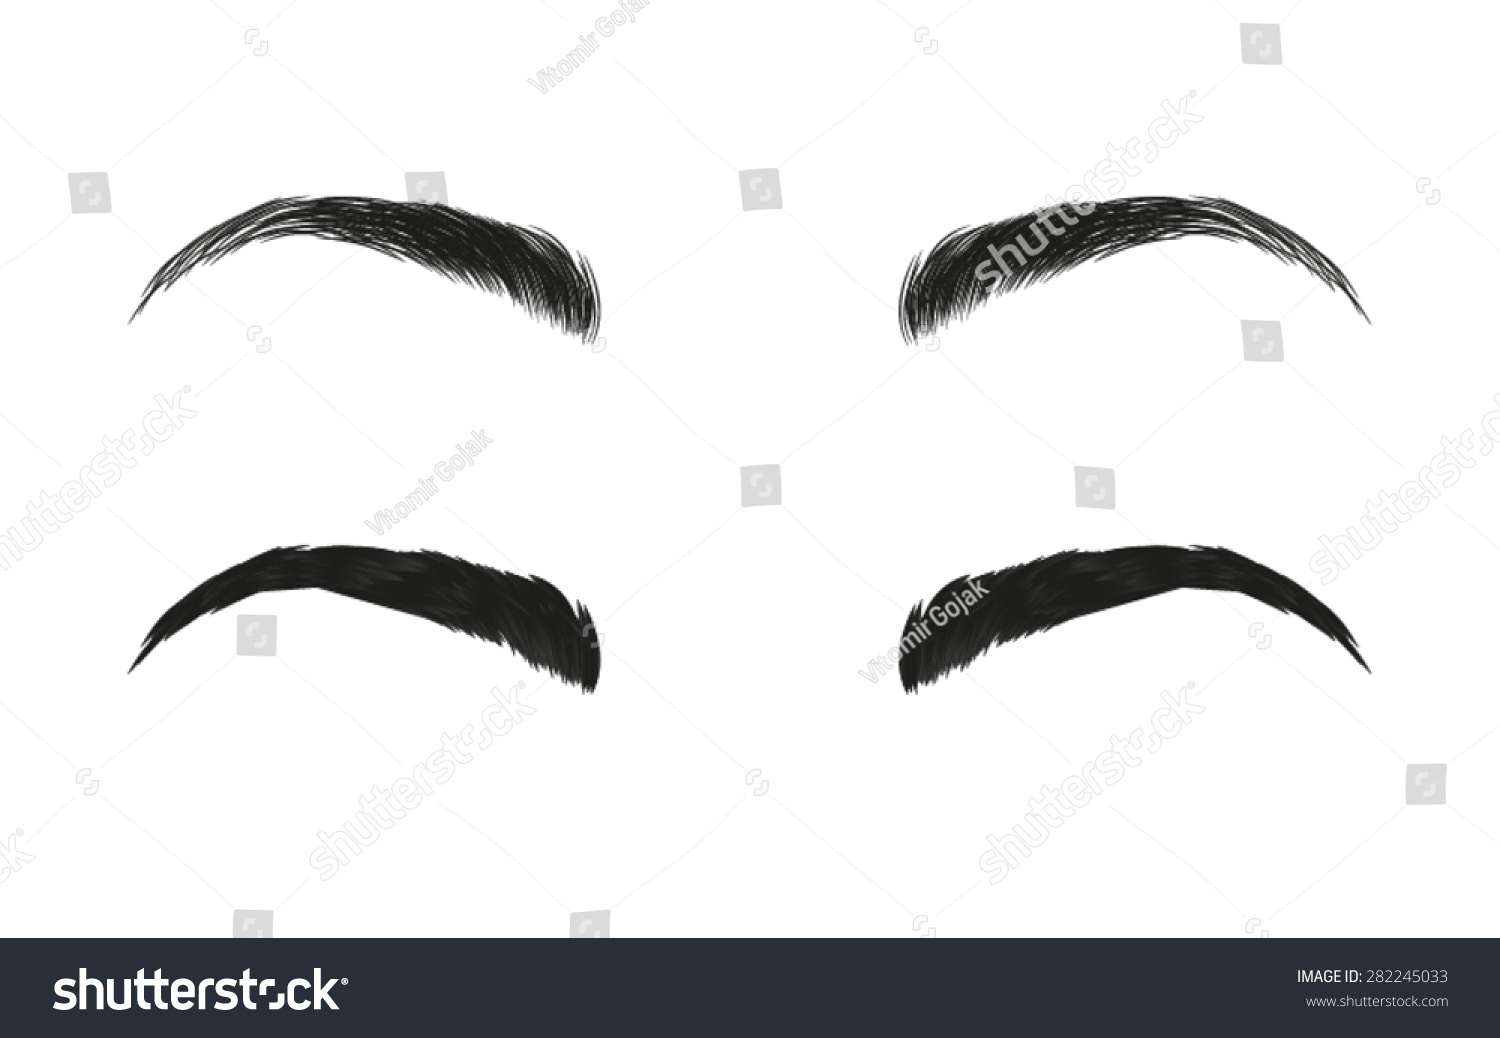 Vector Eyebrows Realistic Cartoon Style Stock Vector Royalty Free